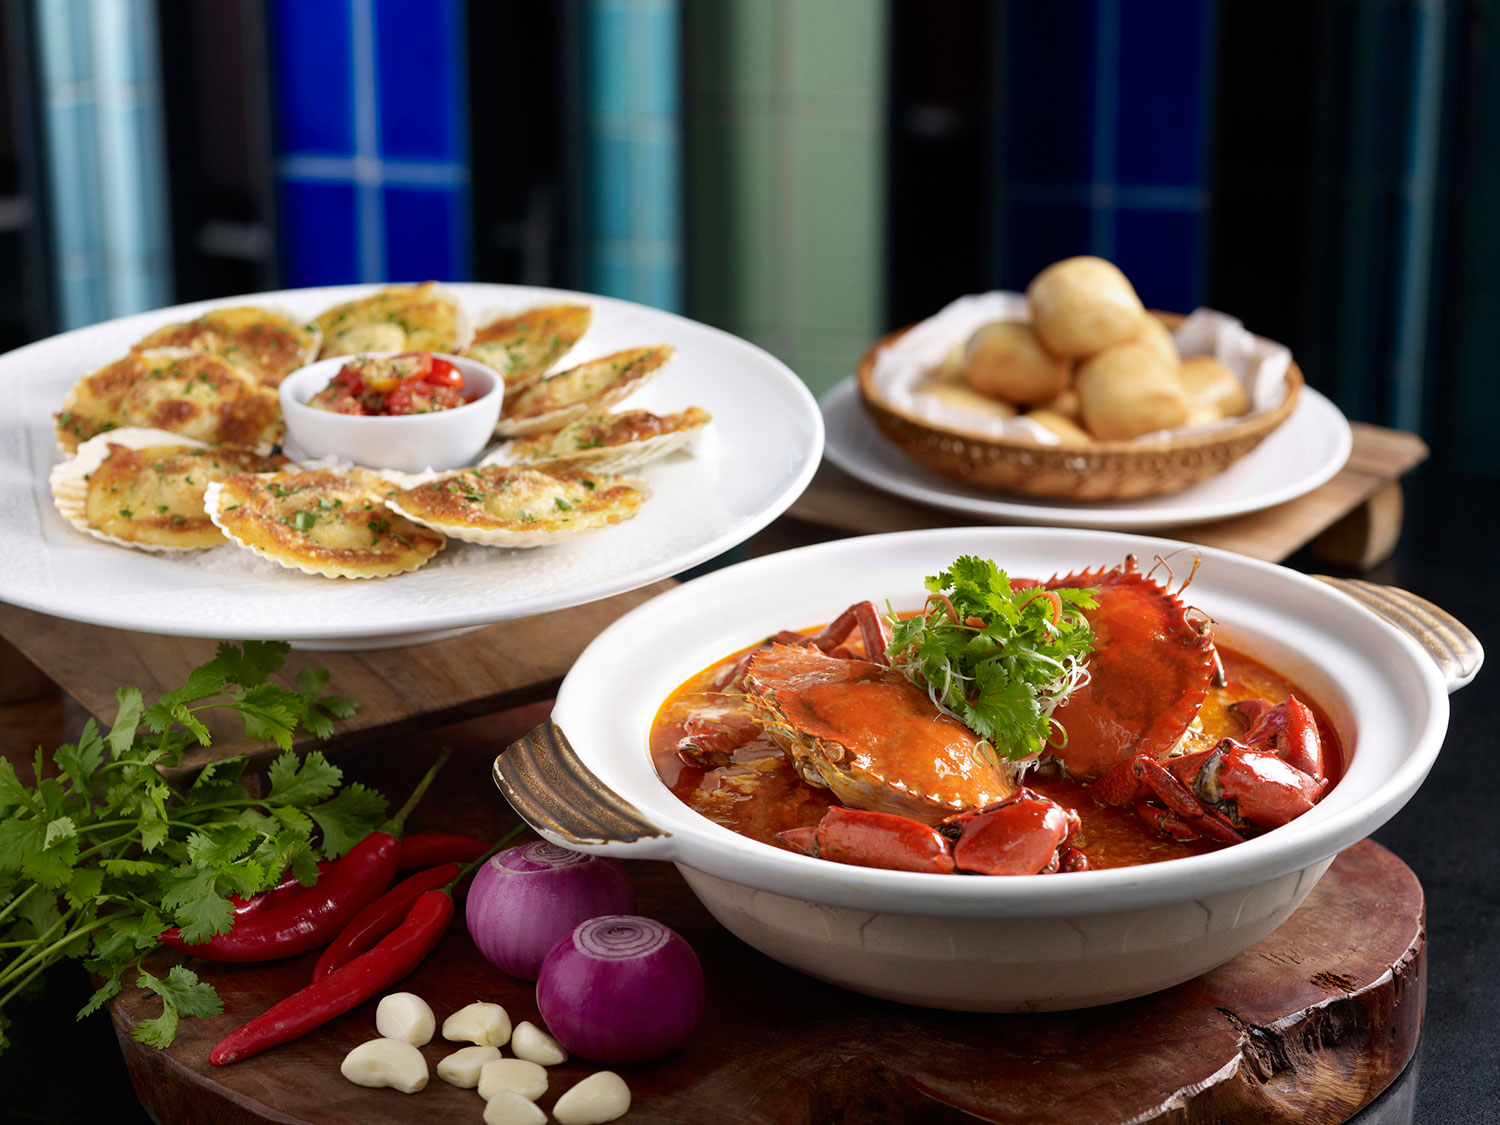 Crowne-Plaza-Changi-Airport---Seafood-Splendour-Buffet---Chilli-Crabs-served-with-mini-mantou-and-Baked-Scallops